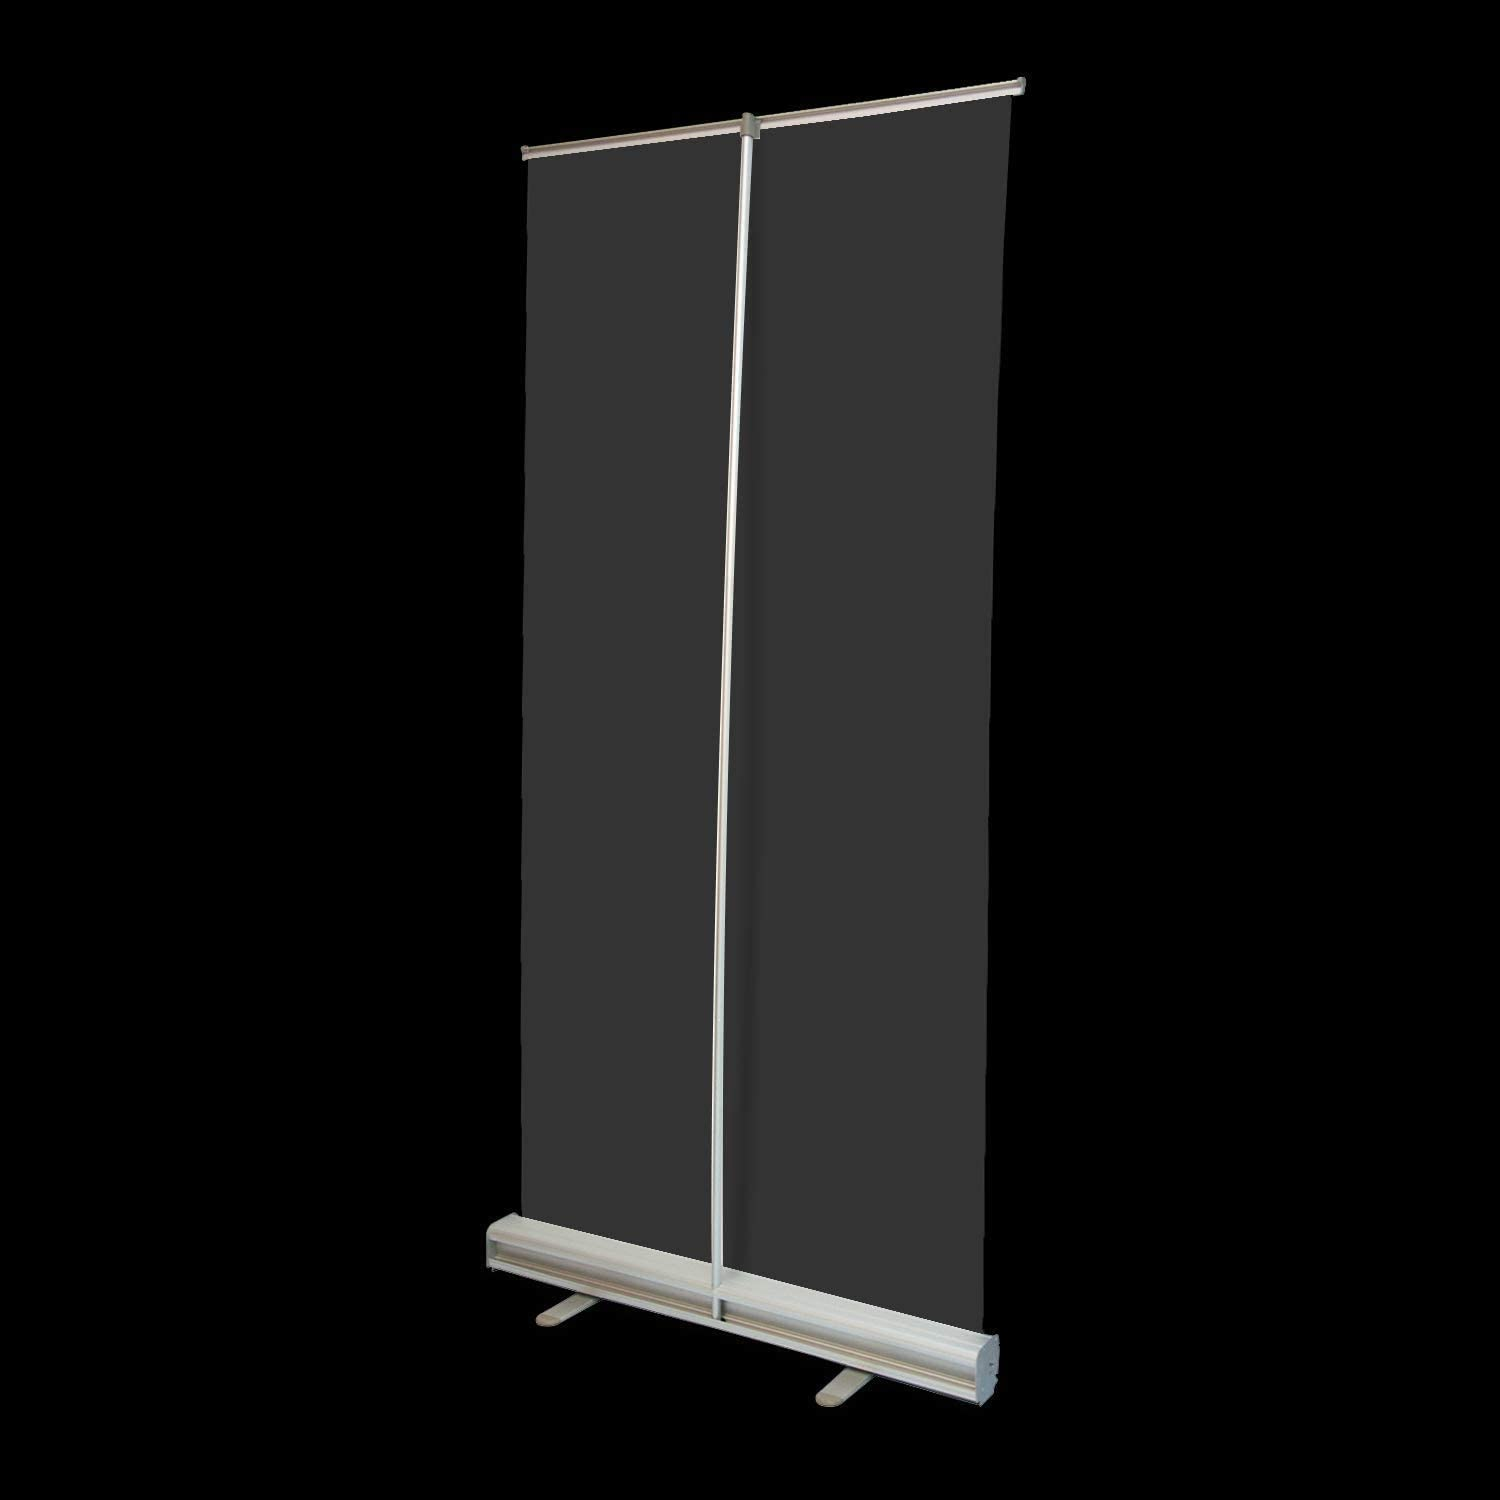 Clear Film Protective Shield for Cafes Cashier Retail Stores Full Tarp with Roll Up Stand Free Standing Isolation Barrier Receptionist 2 X 5 YZPFSD Floor Standing Sneeze Guard Office